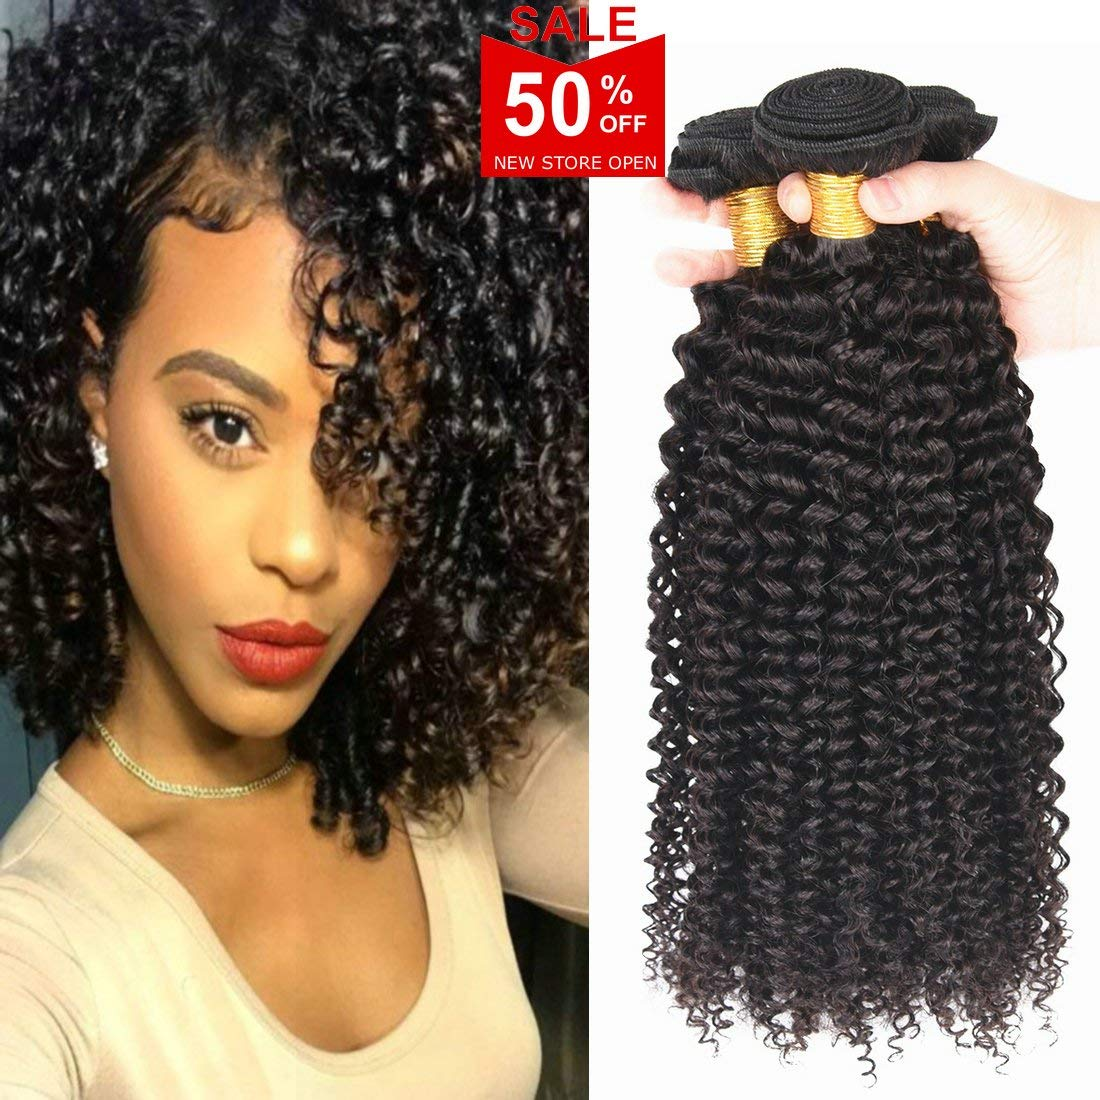 Cheap Black Curly Weave Styles Find Black Curly Weave Styles Deals